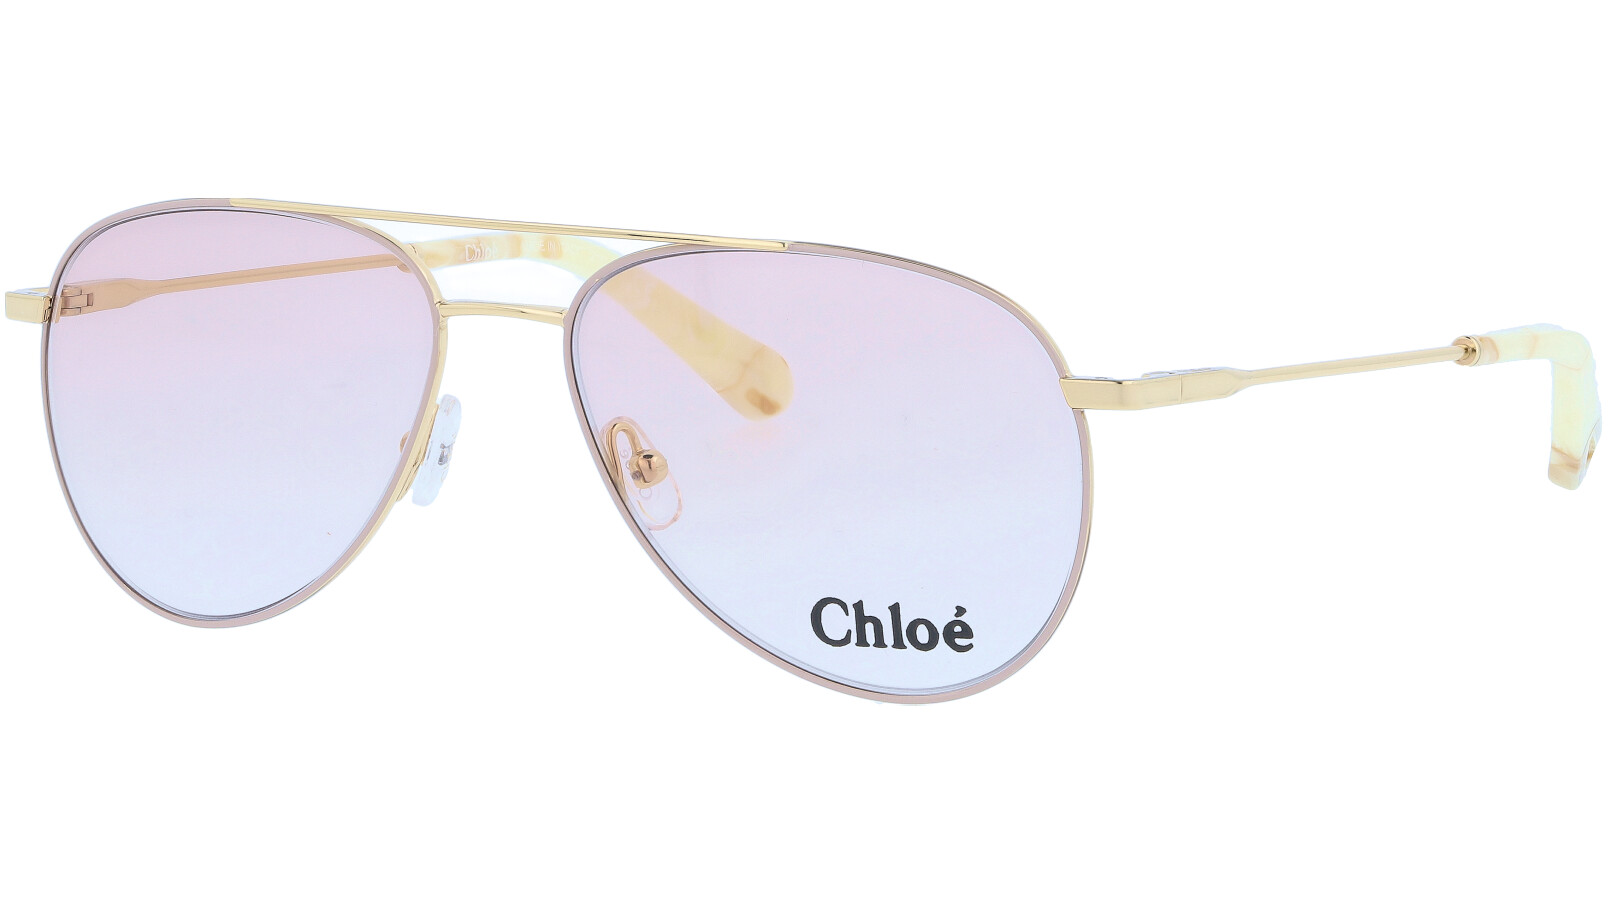 CHLOE CE2137 743 55 Gold Beige Aviator Sunglasses